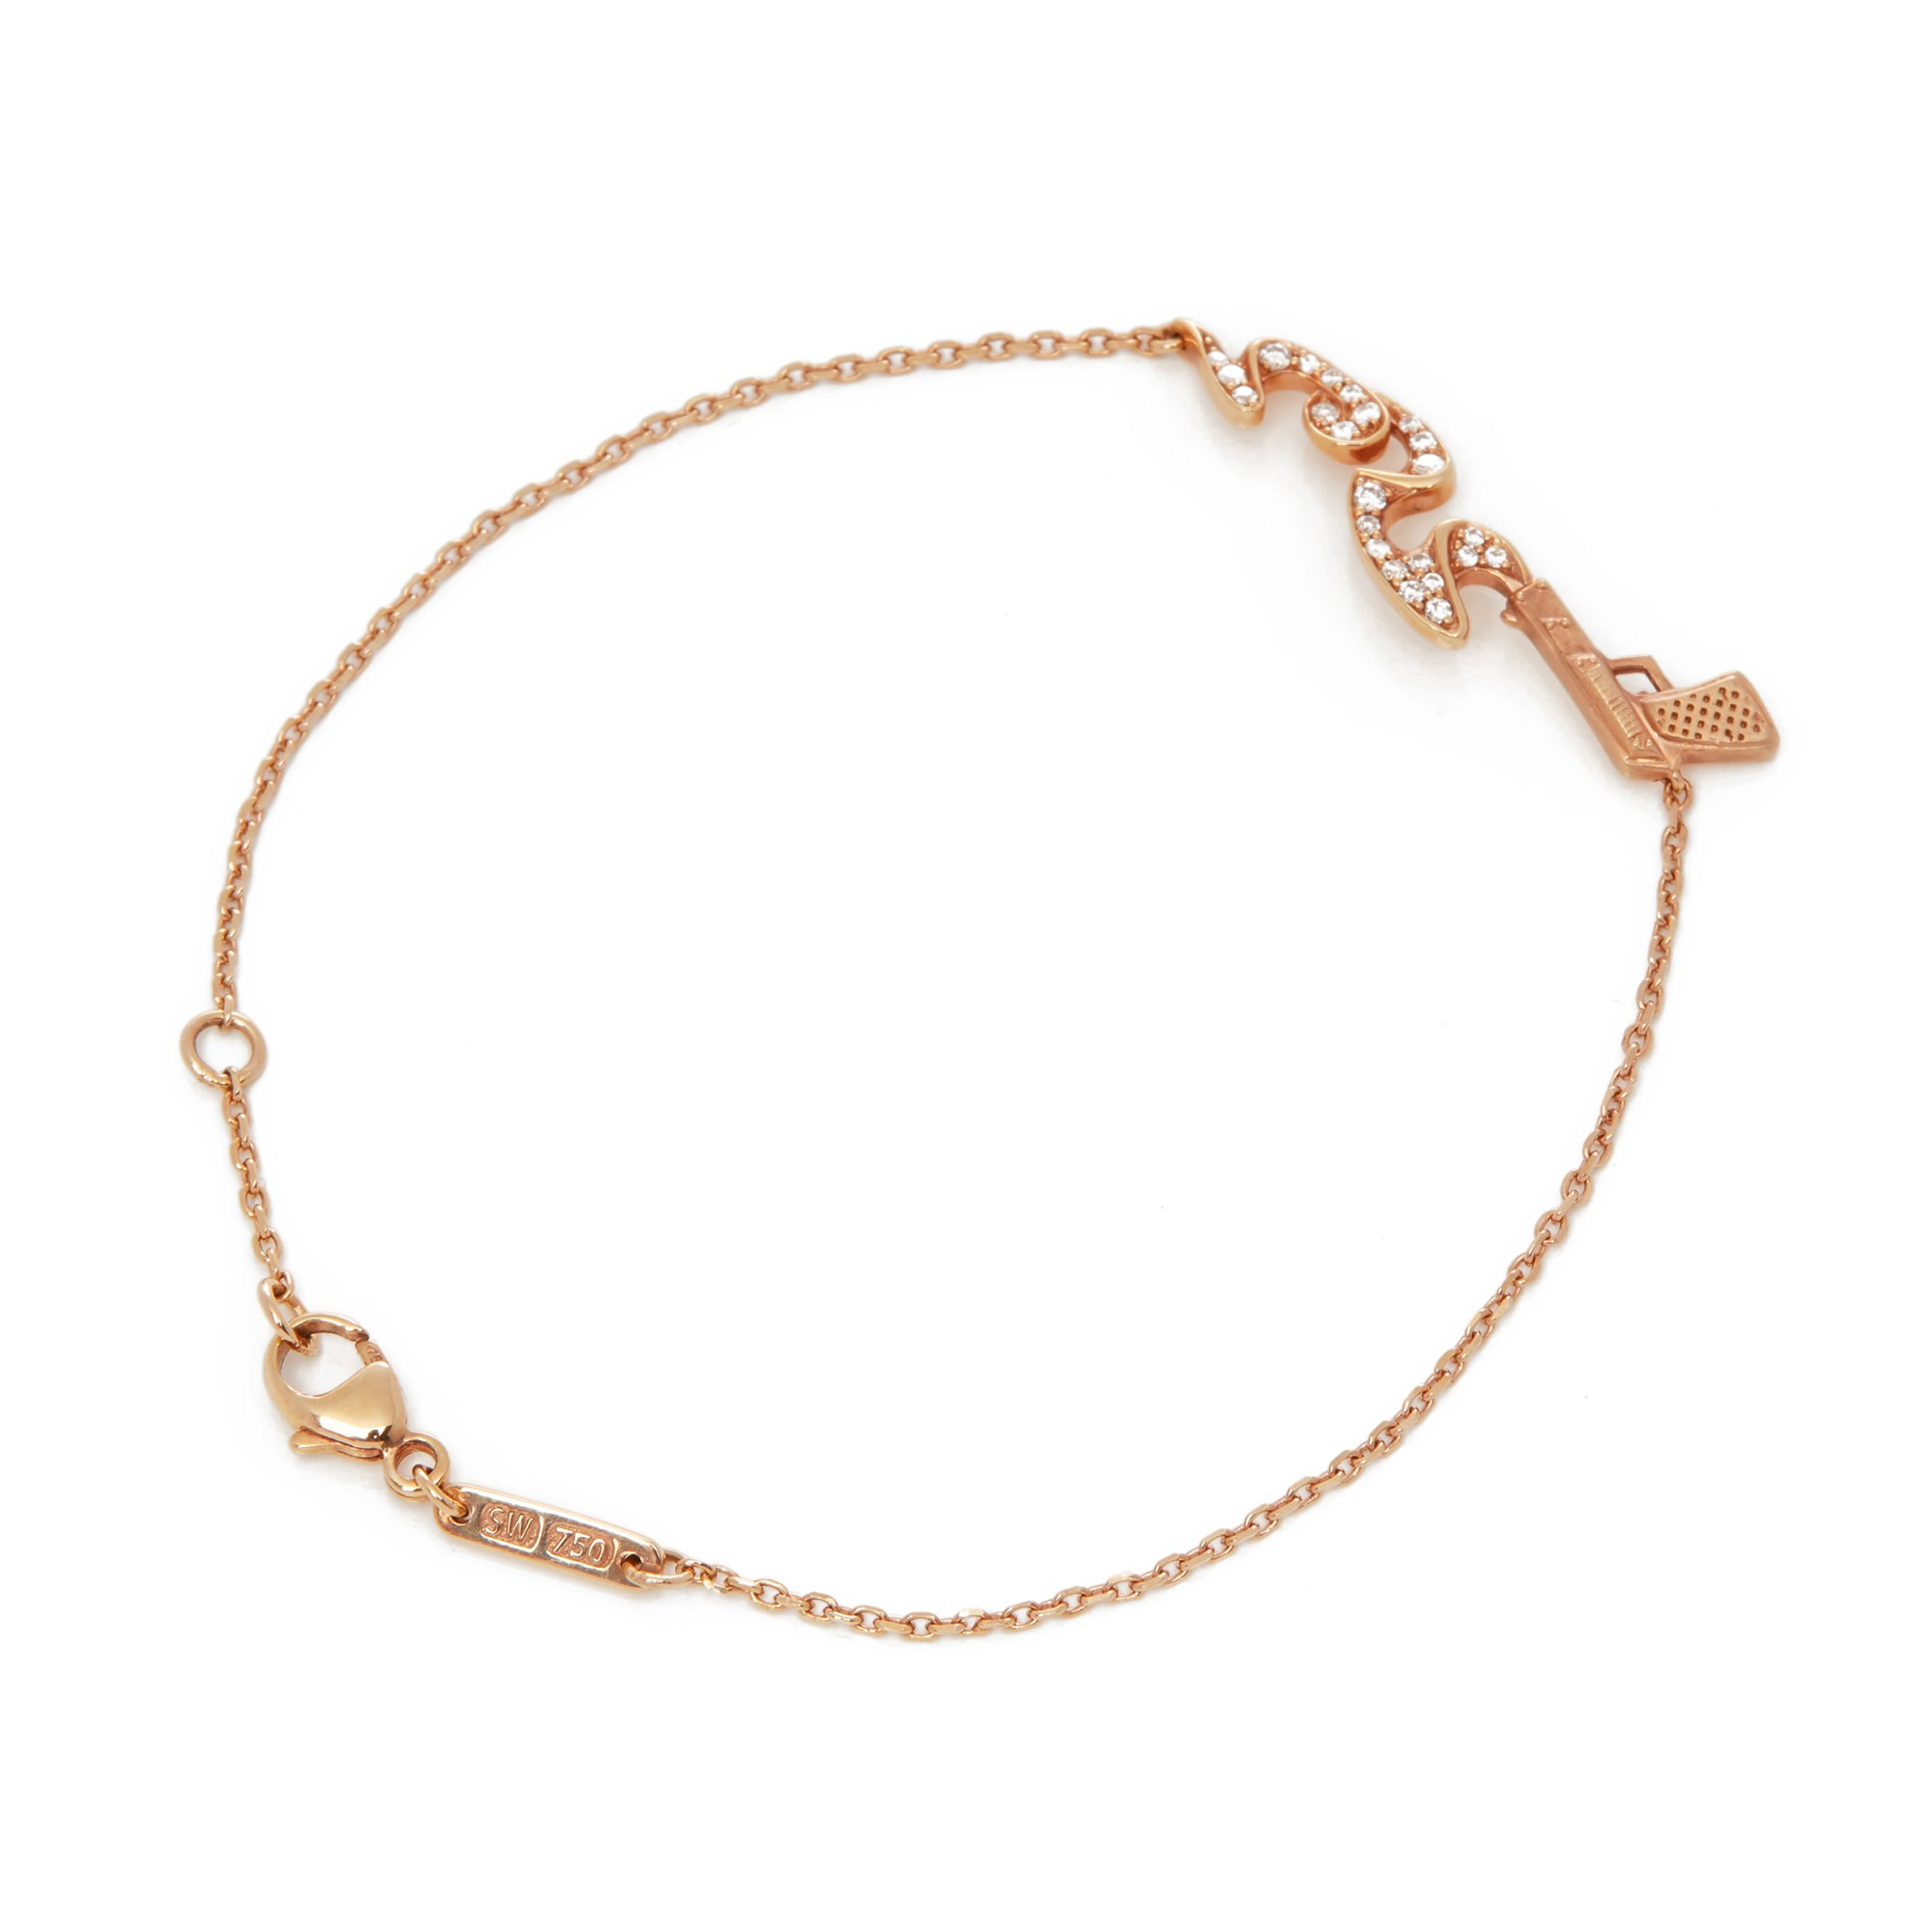 Stephen Webster 18k Rose Gold Murder She Wrote Bracelet